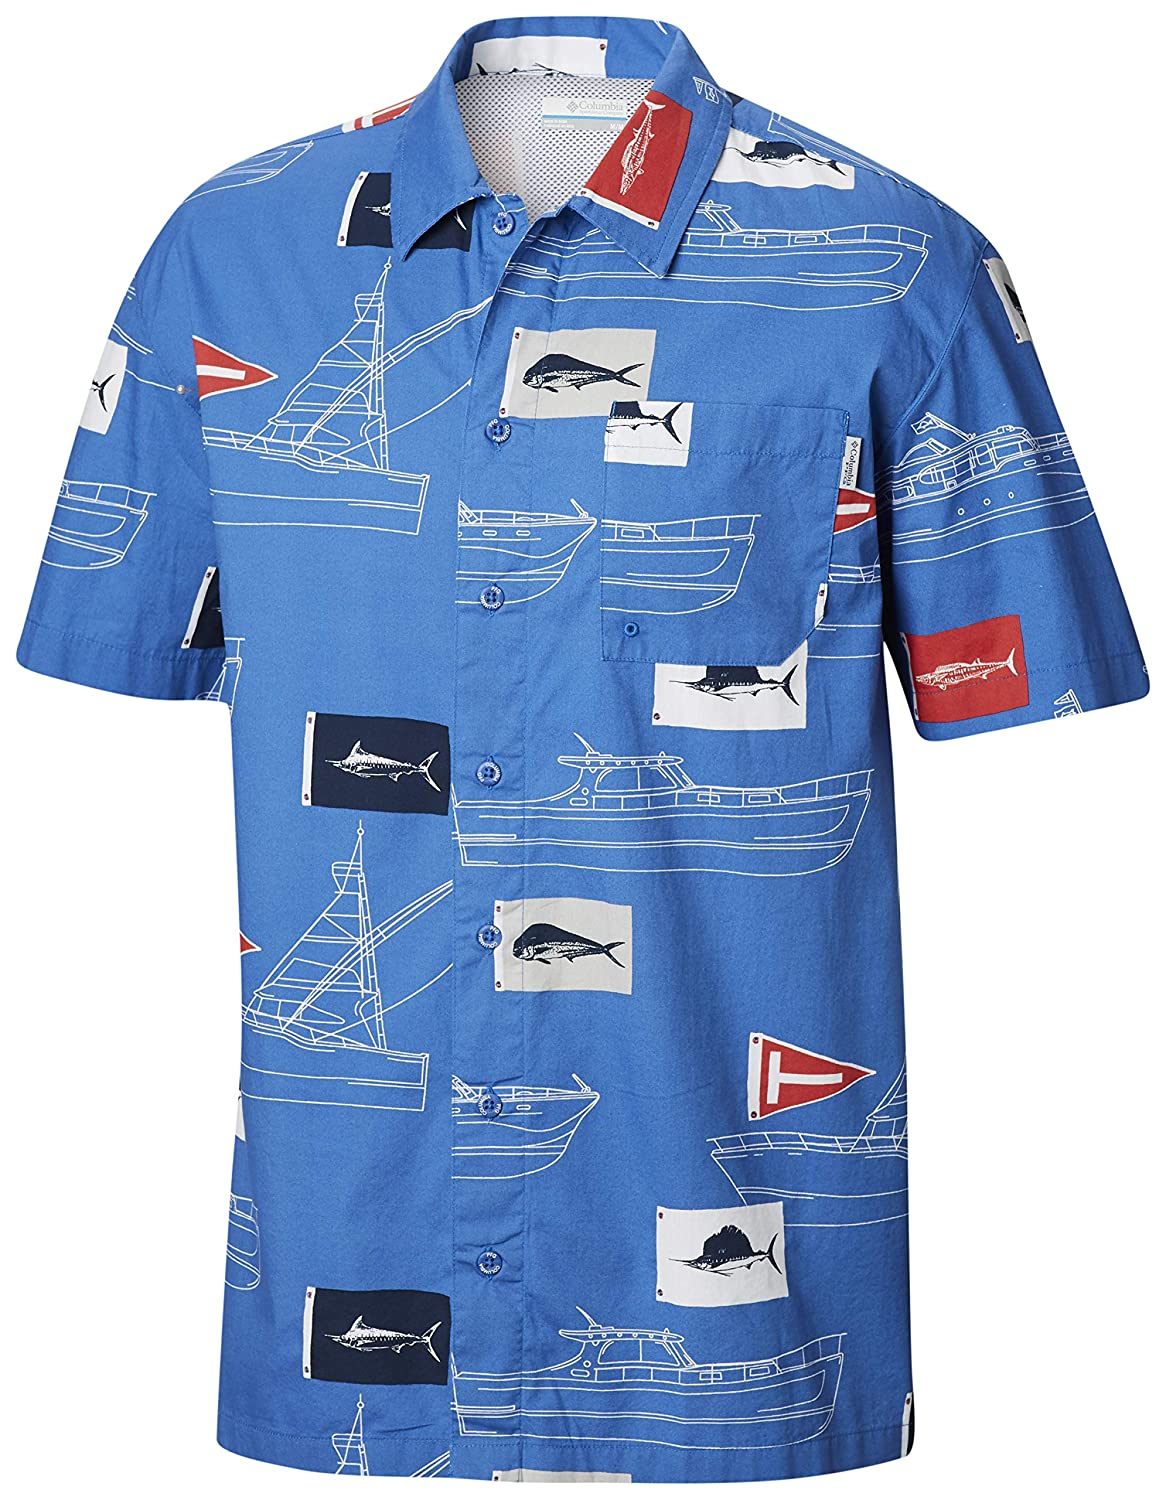 Breathable Columbia PFG Mens Trollers Best Short Sleeve Shirt Button-Up